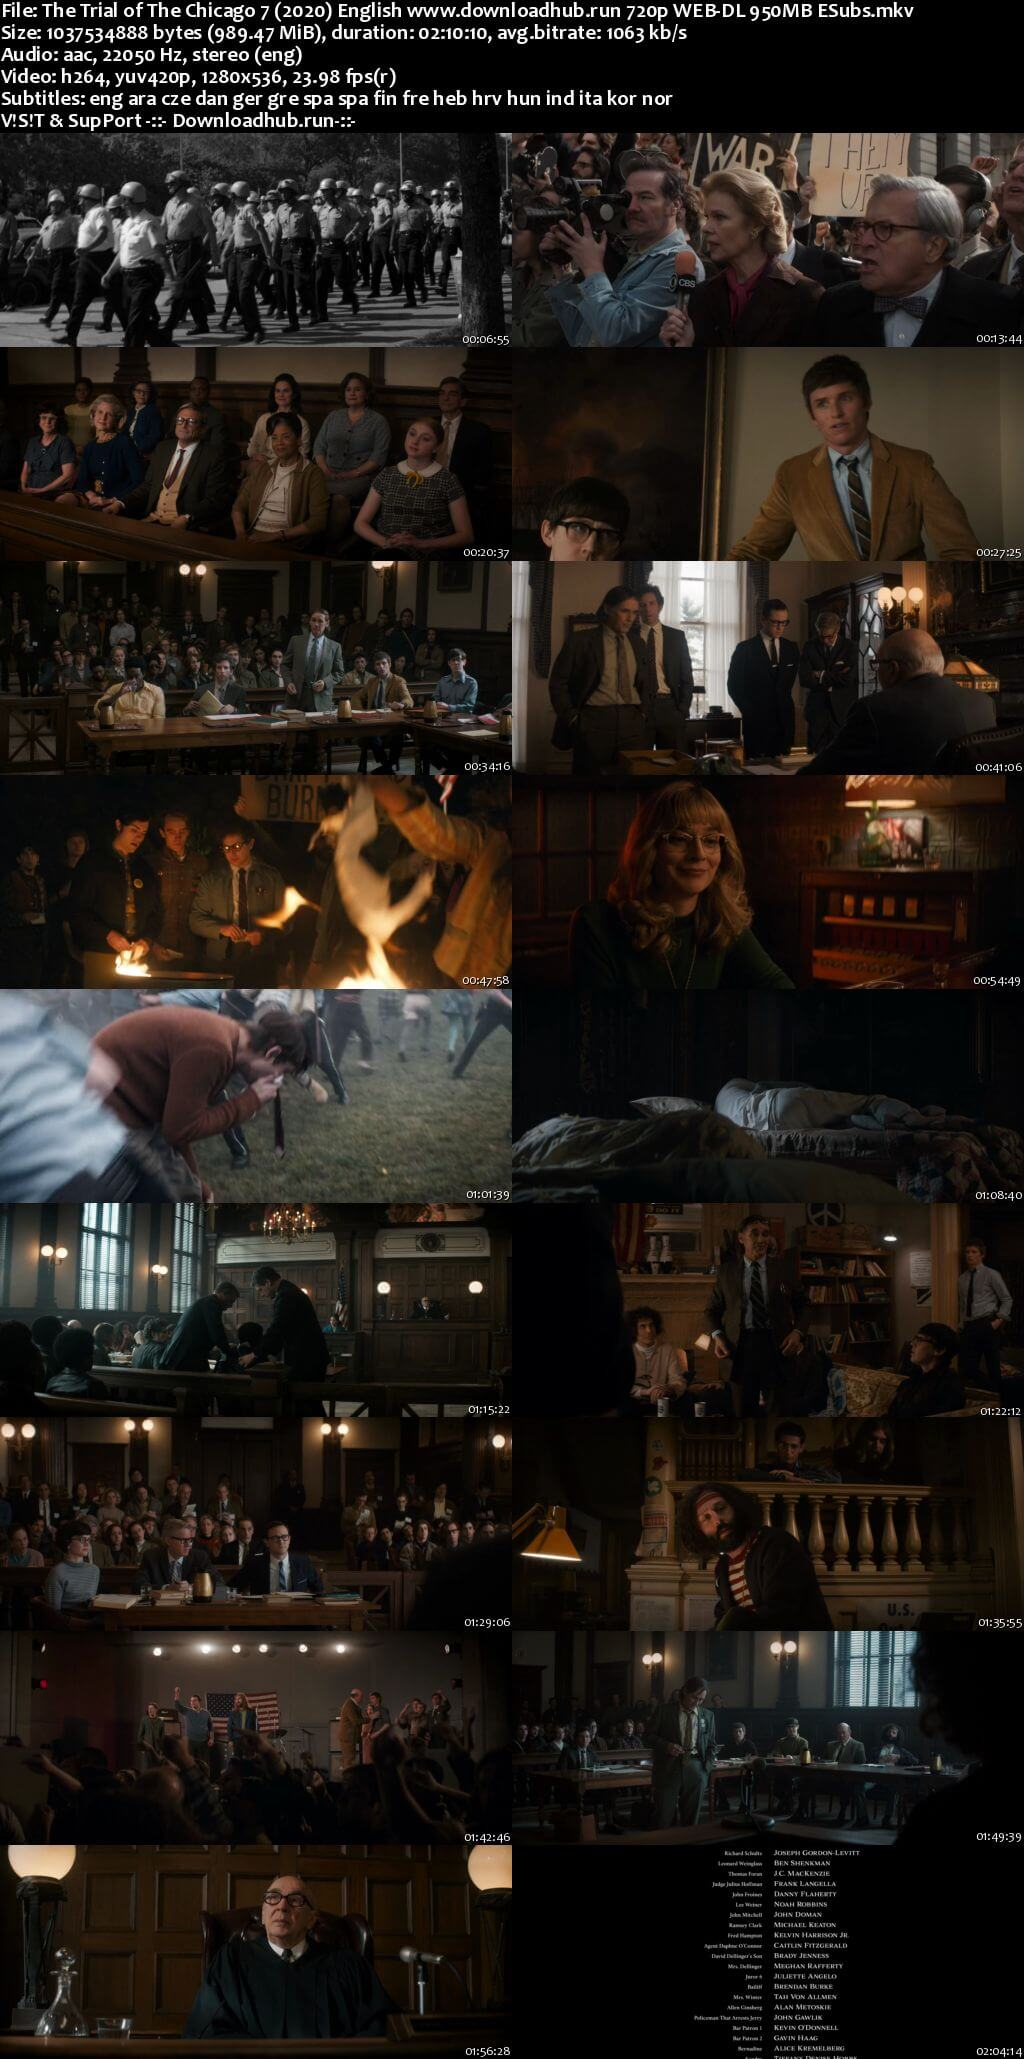 The Trial of the Chicago 7 2020 English 720p Web-DL 950MB ESubs